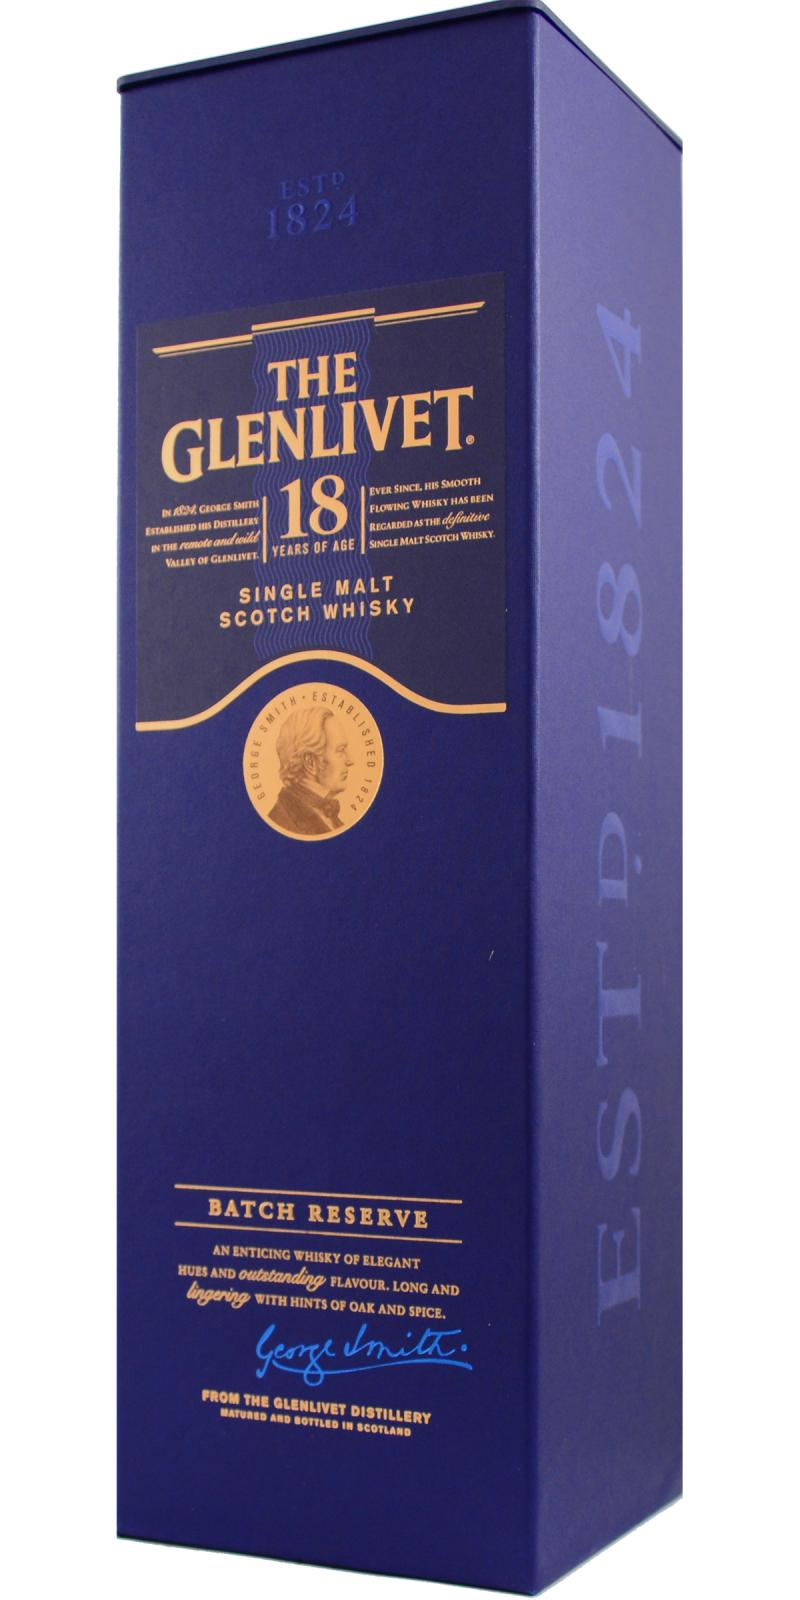 Glenlivet 18-year-old